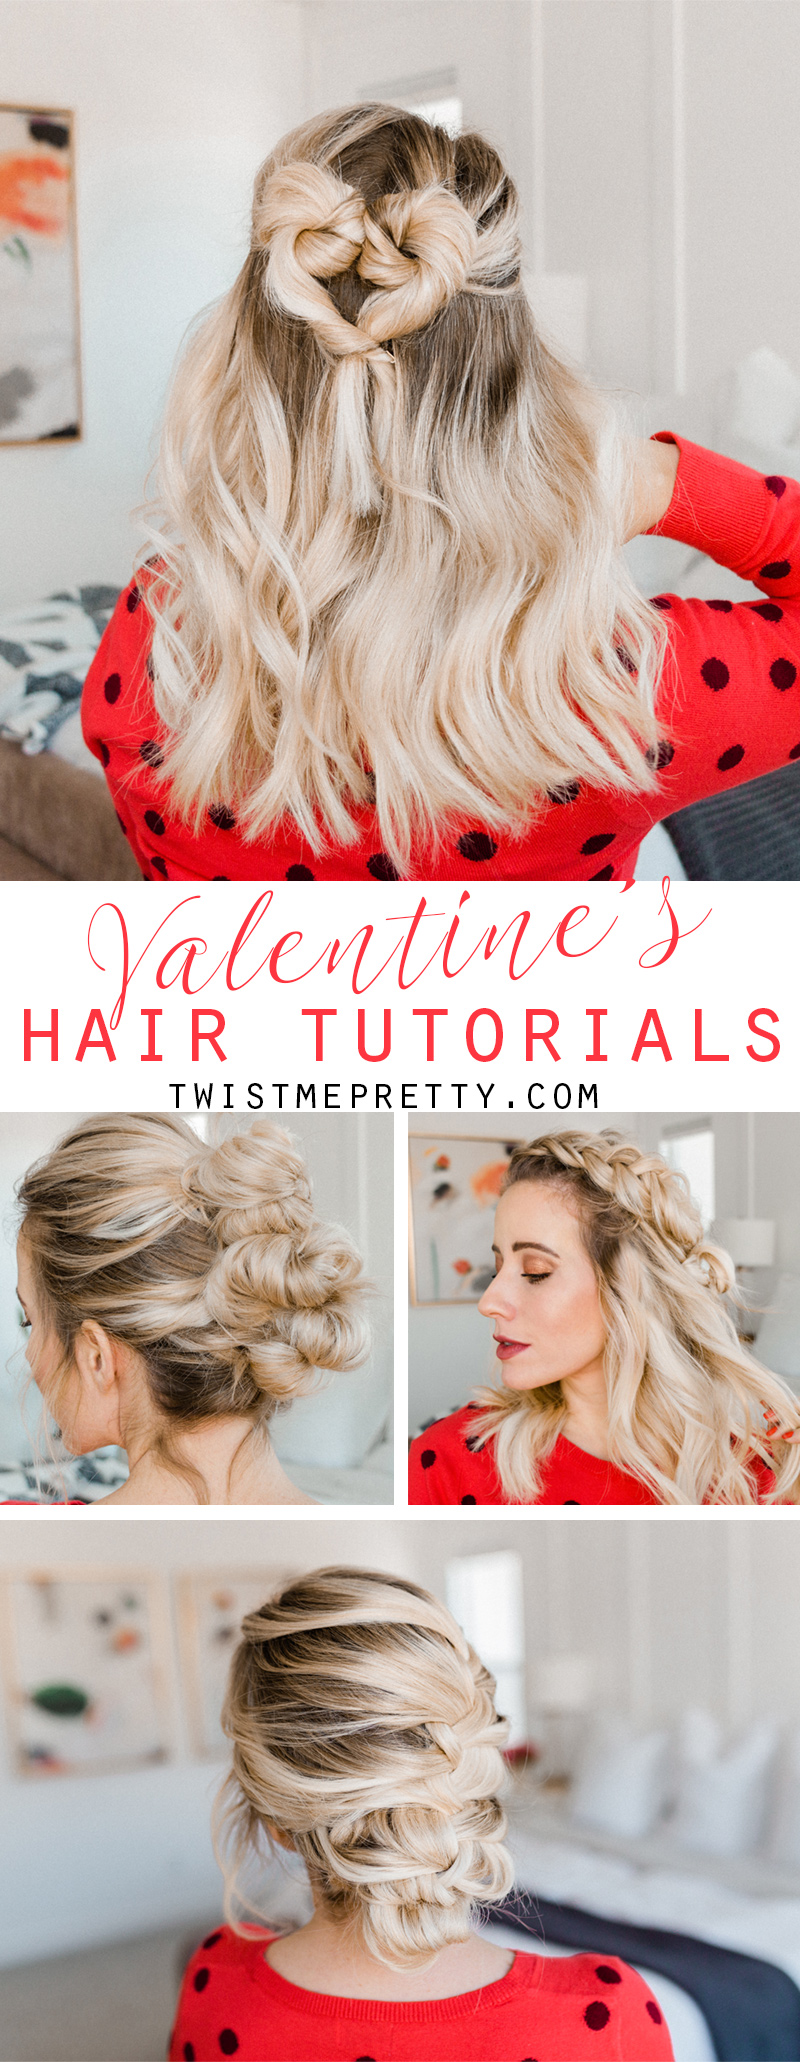 Valentine's Hair Tutorials